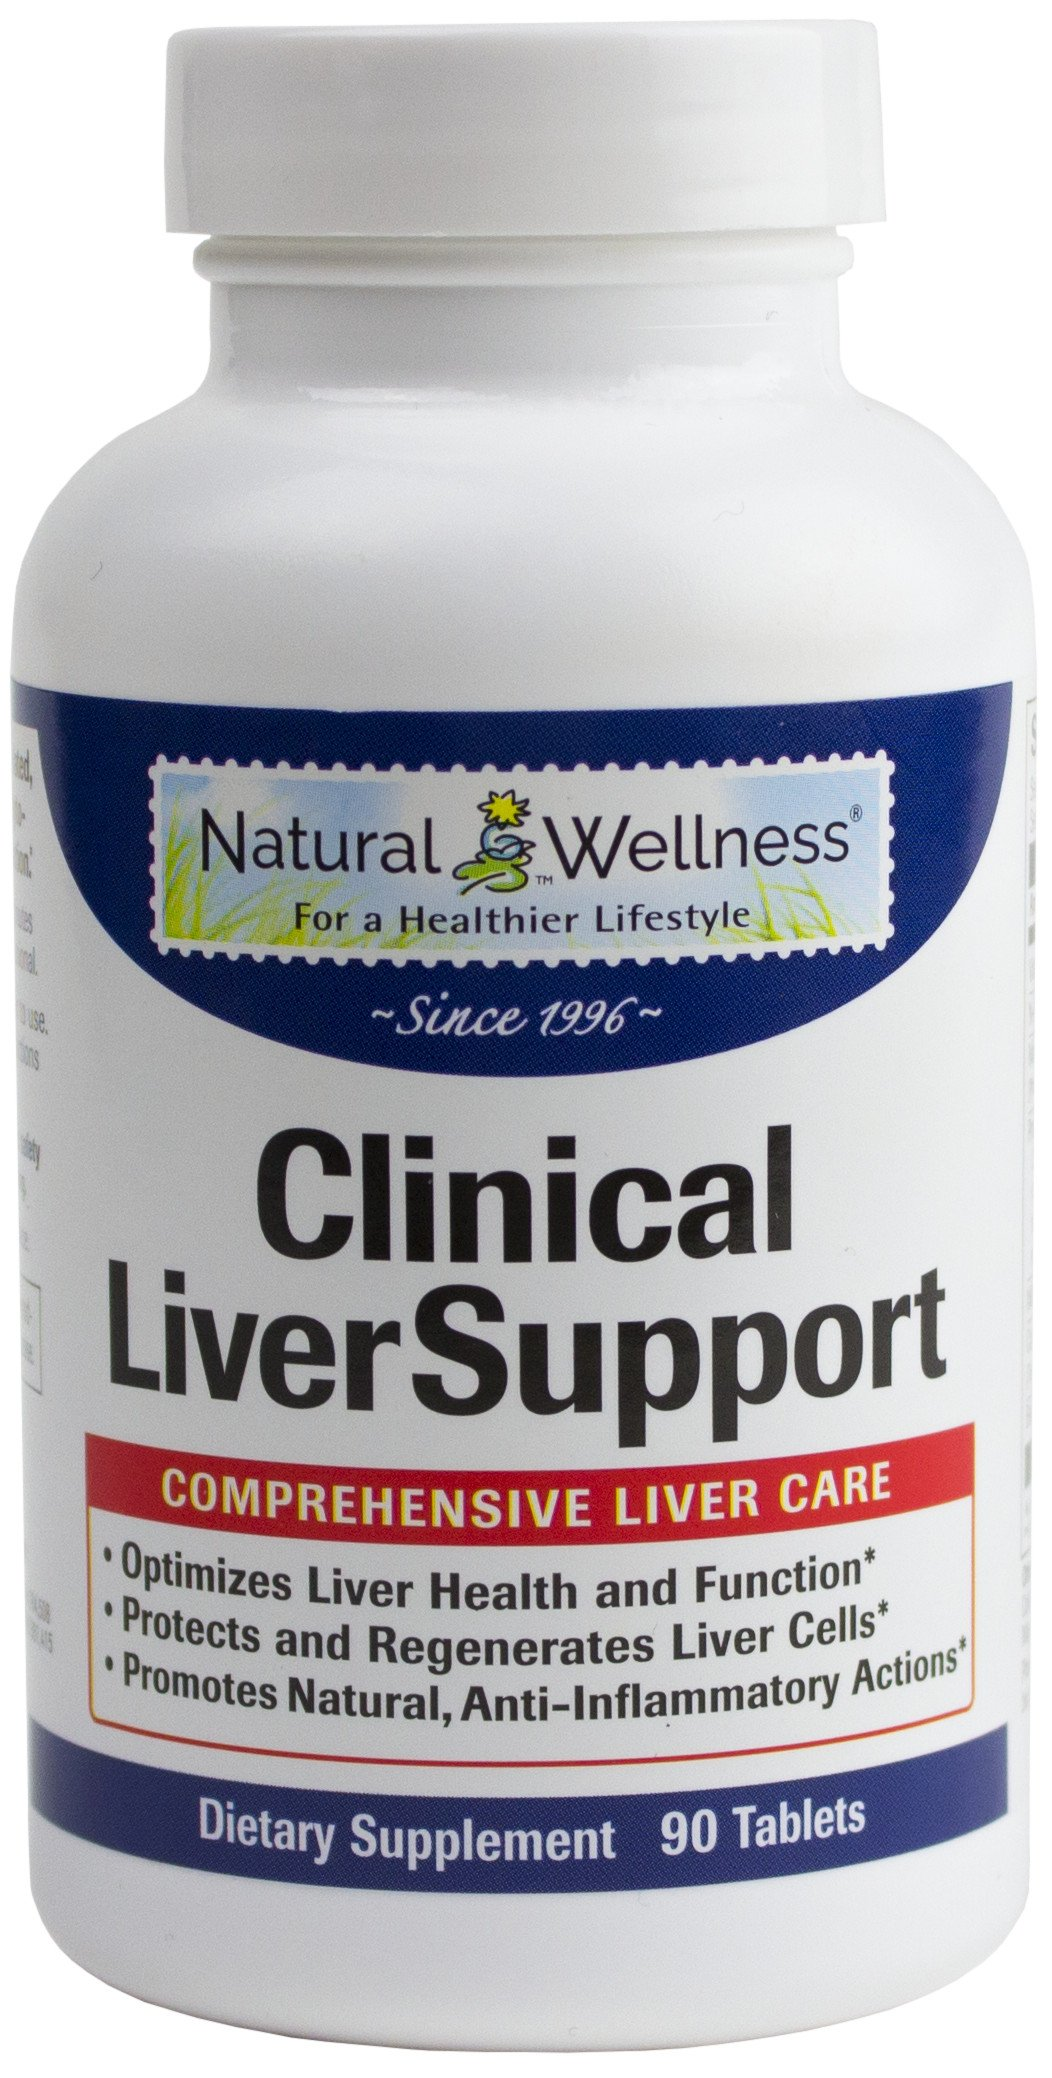 Natural Wellness Clinical Liver Support -12 Natural Supplements in 1 Bottle to Address All Your Liver Needs